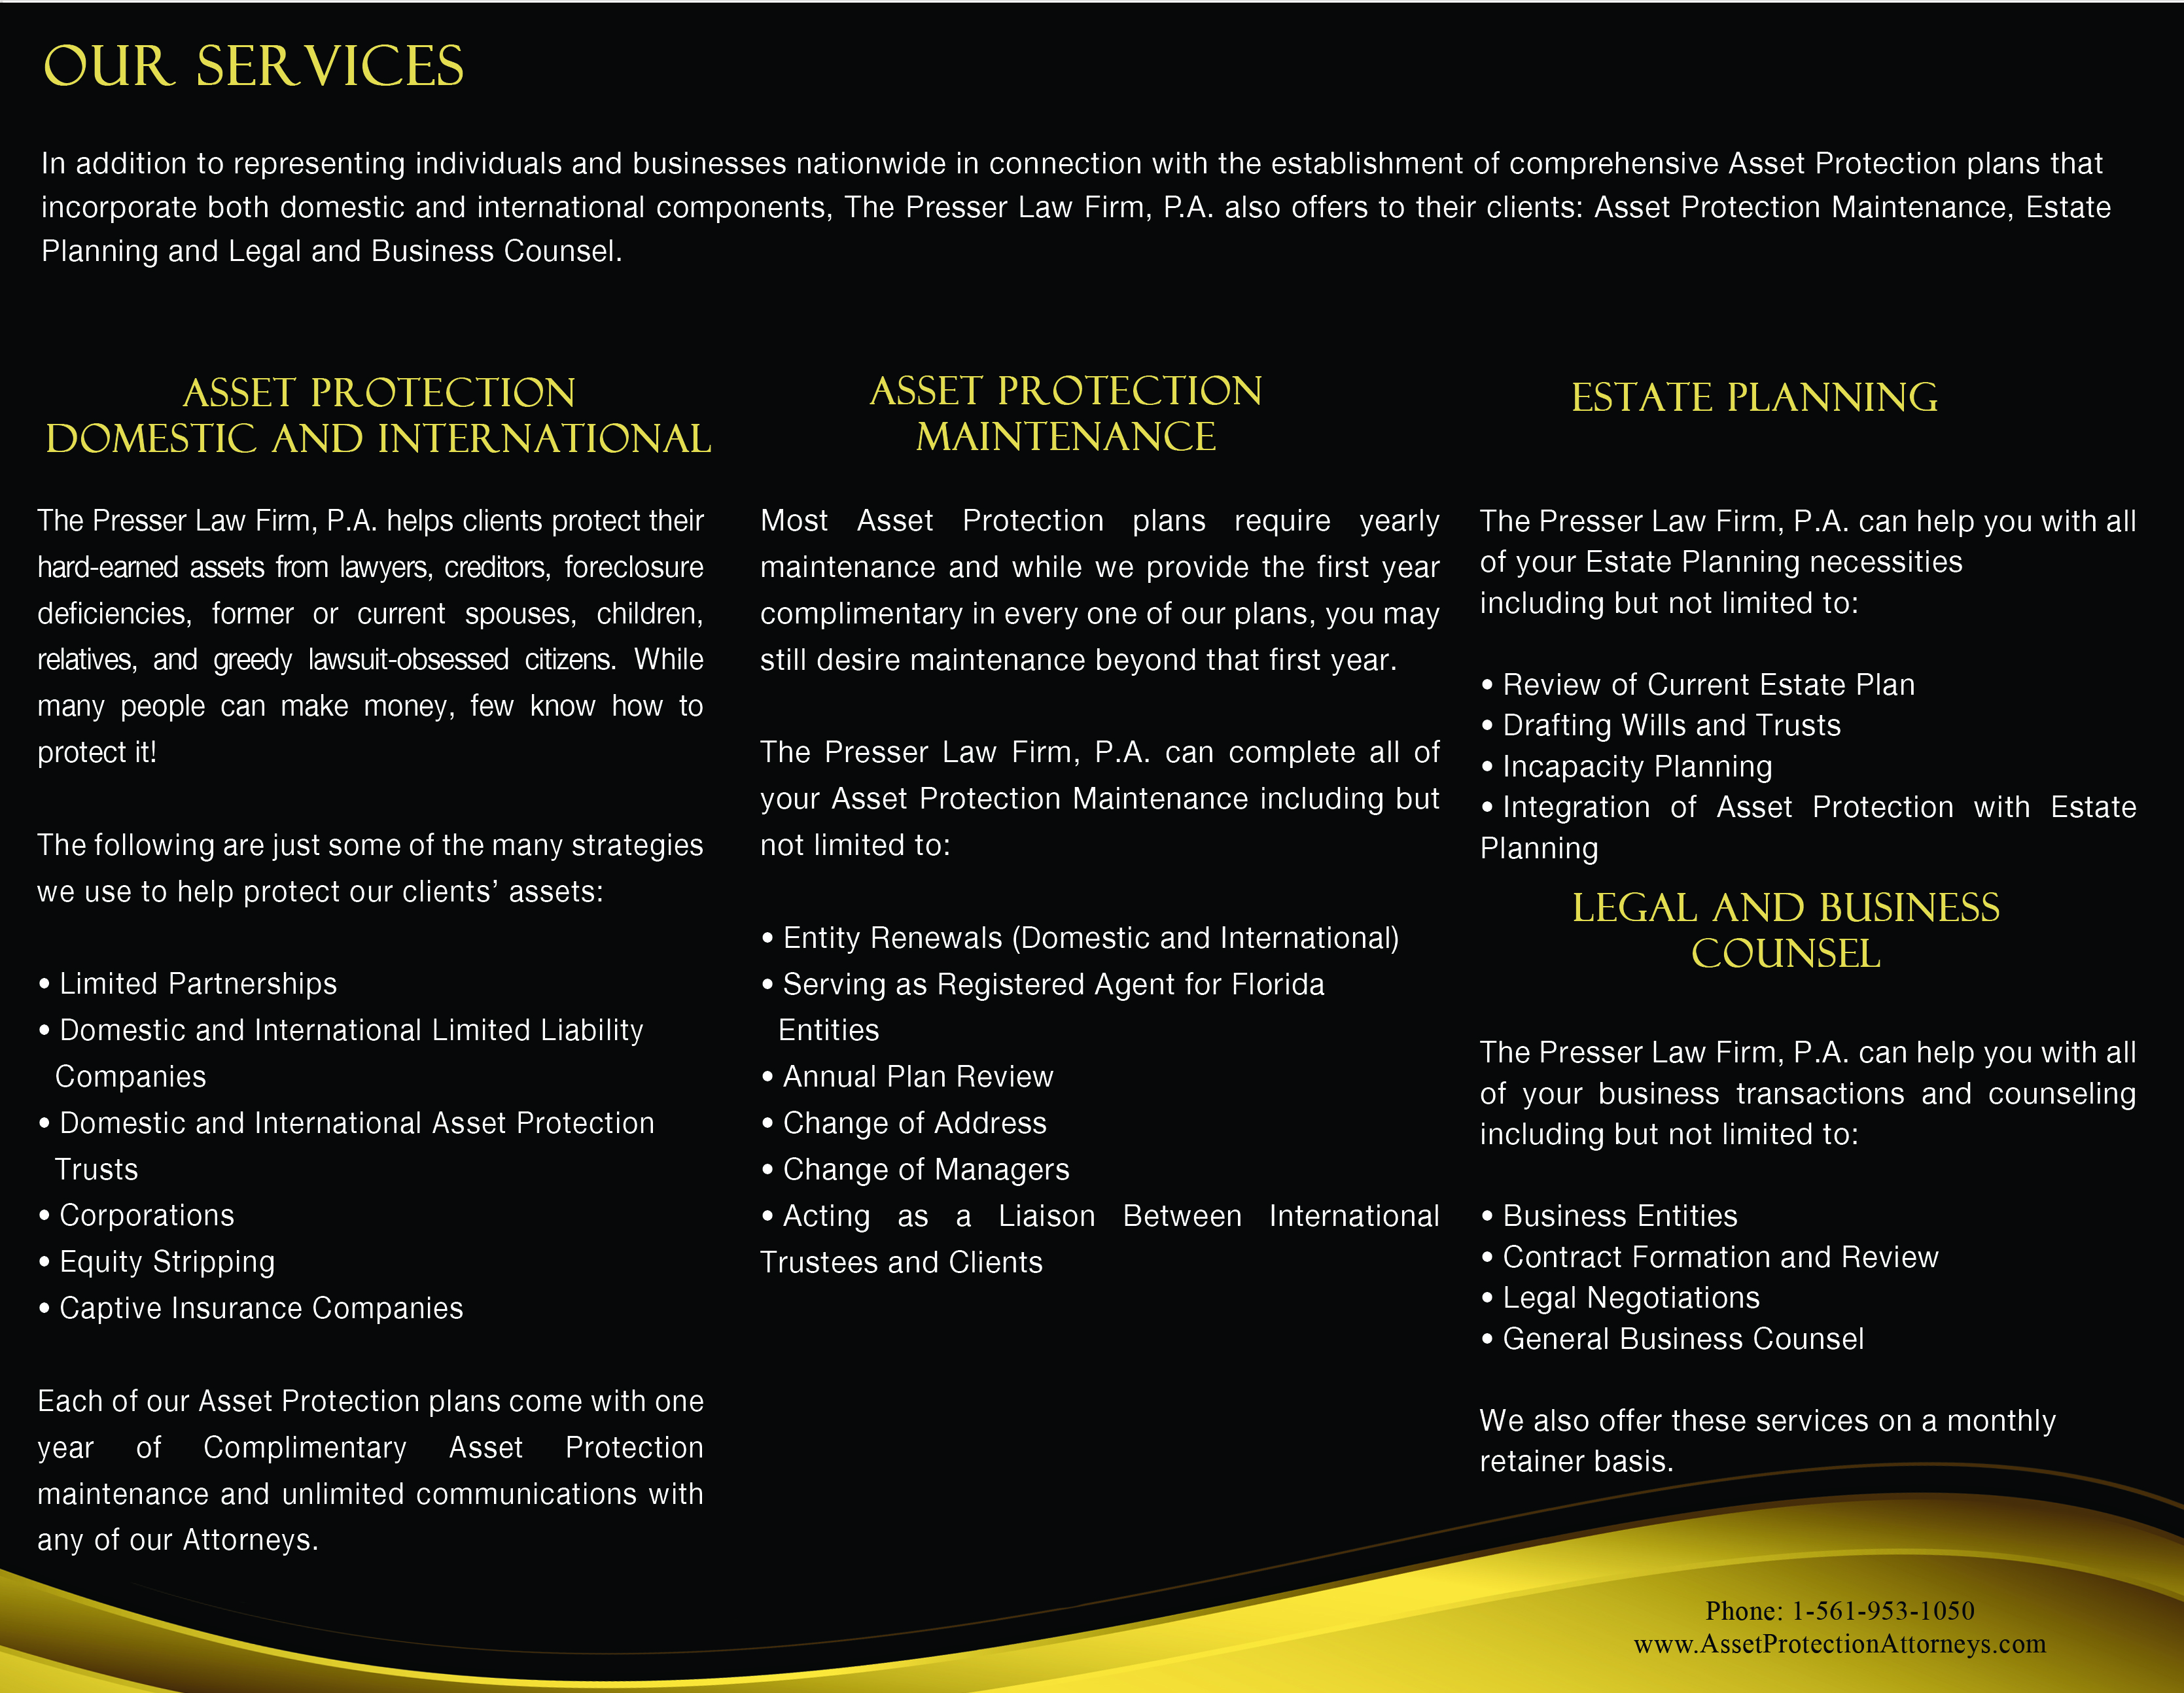 About Us Domestic Asset Protection Attorney – Law Firm Brochure